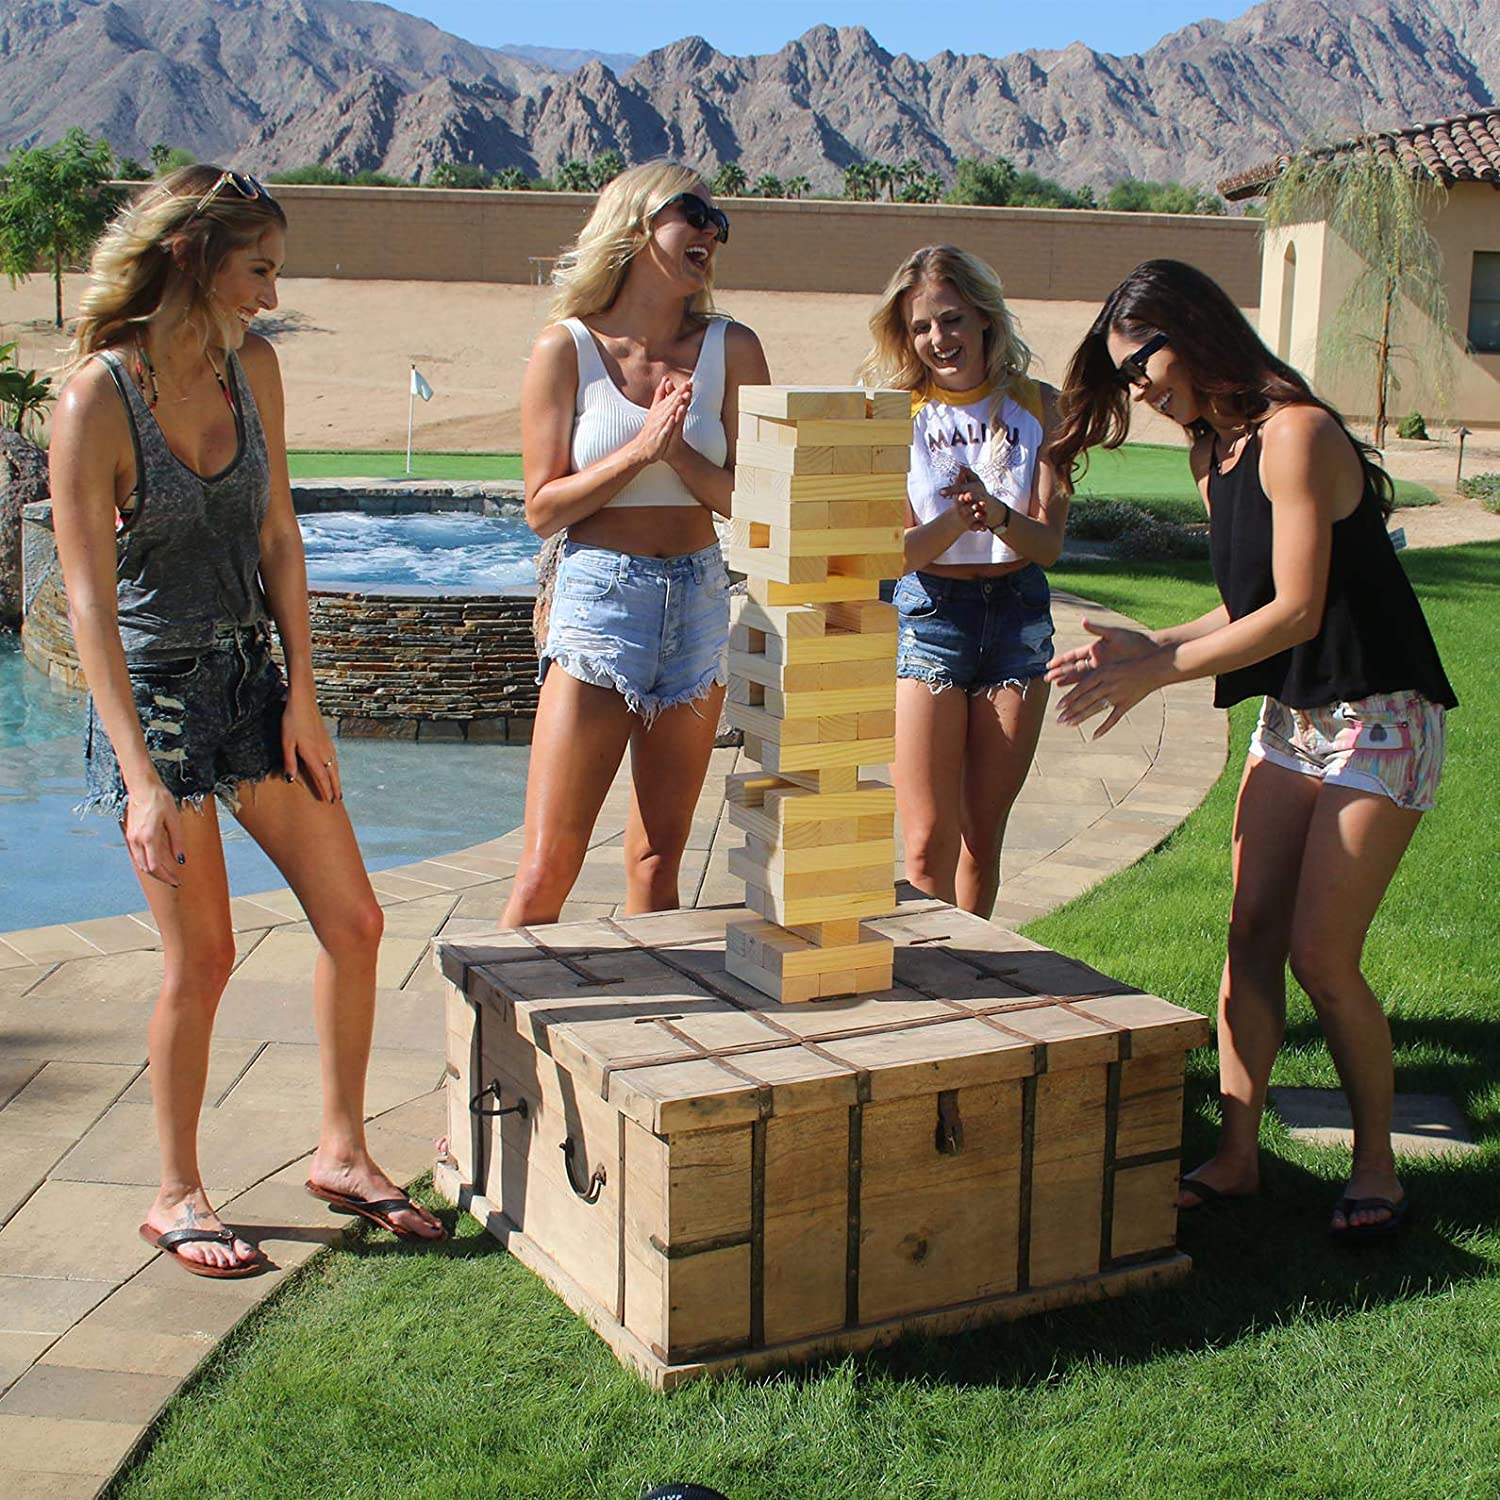 GoSports Giant Wooden Toppling Tower Made from Premium Pine | Choose Between Natural Gray Stain or Stars and Stripes Brown Stain Includes Bonus Rules with Gameboard Stacks to 5+ Feet